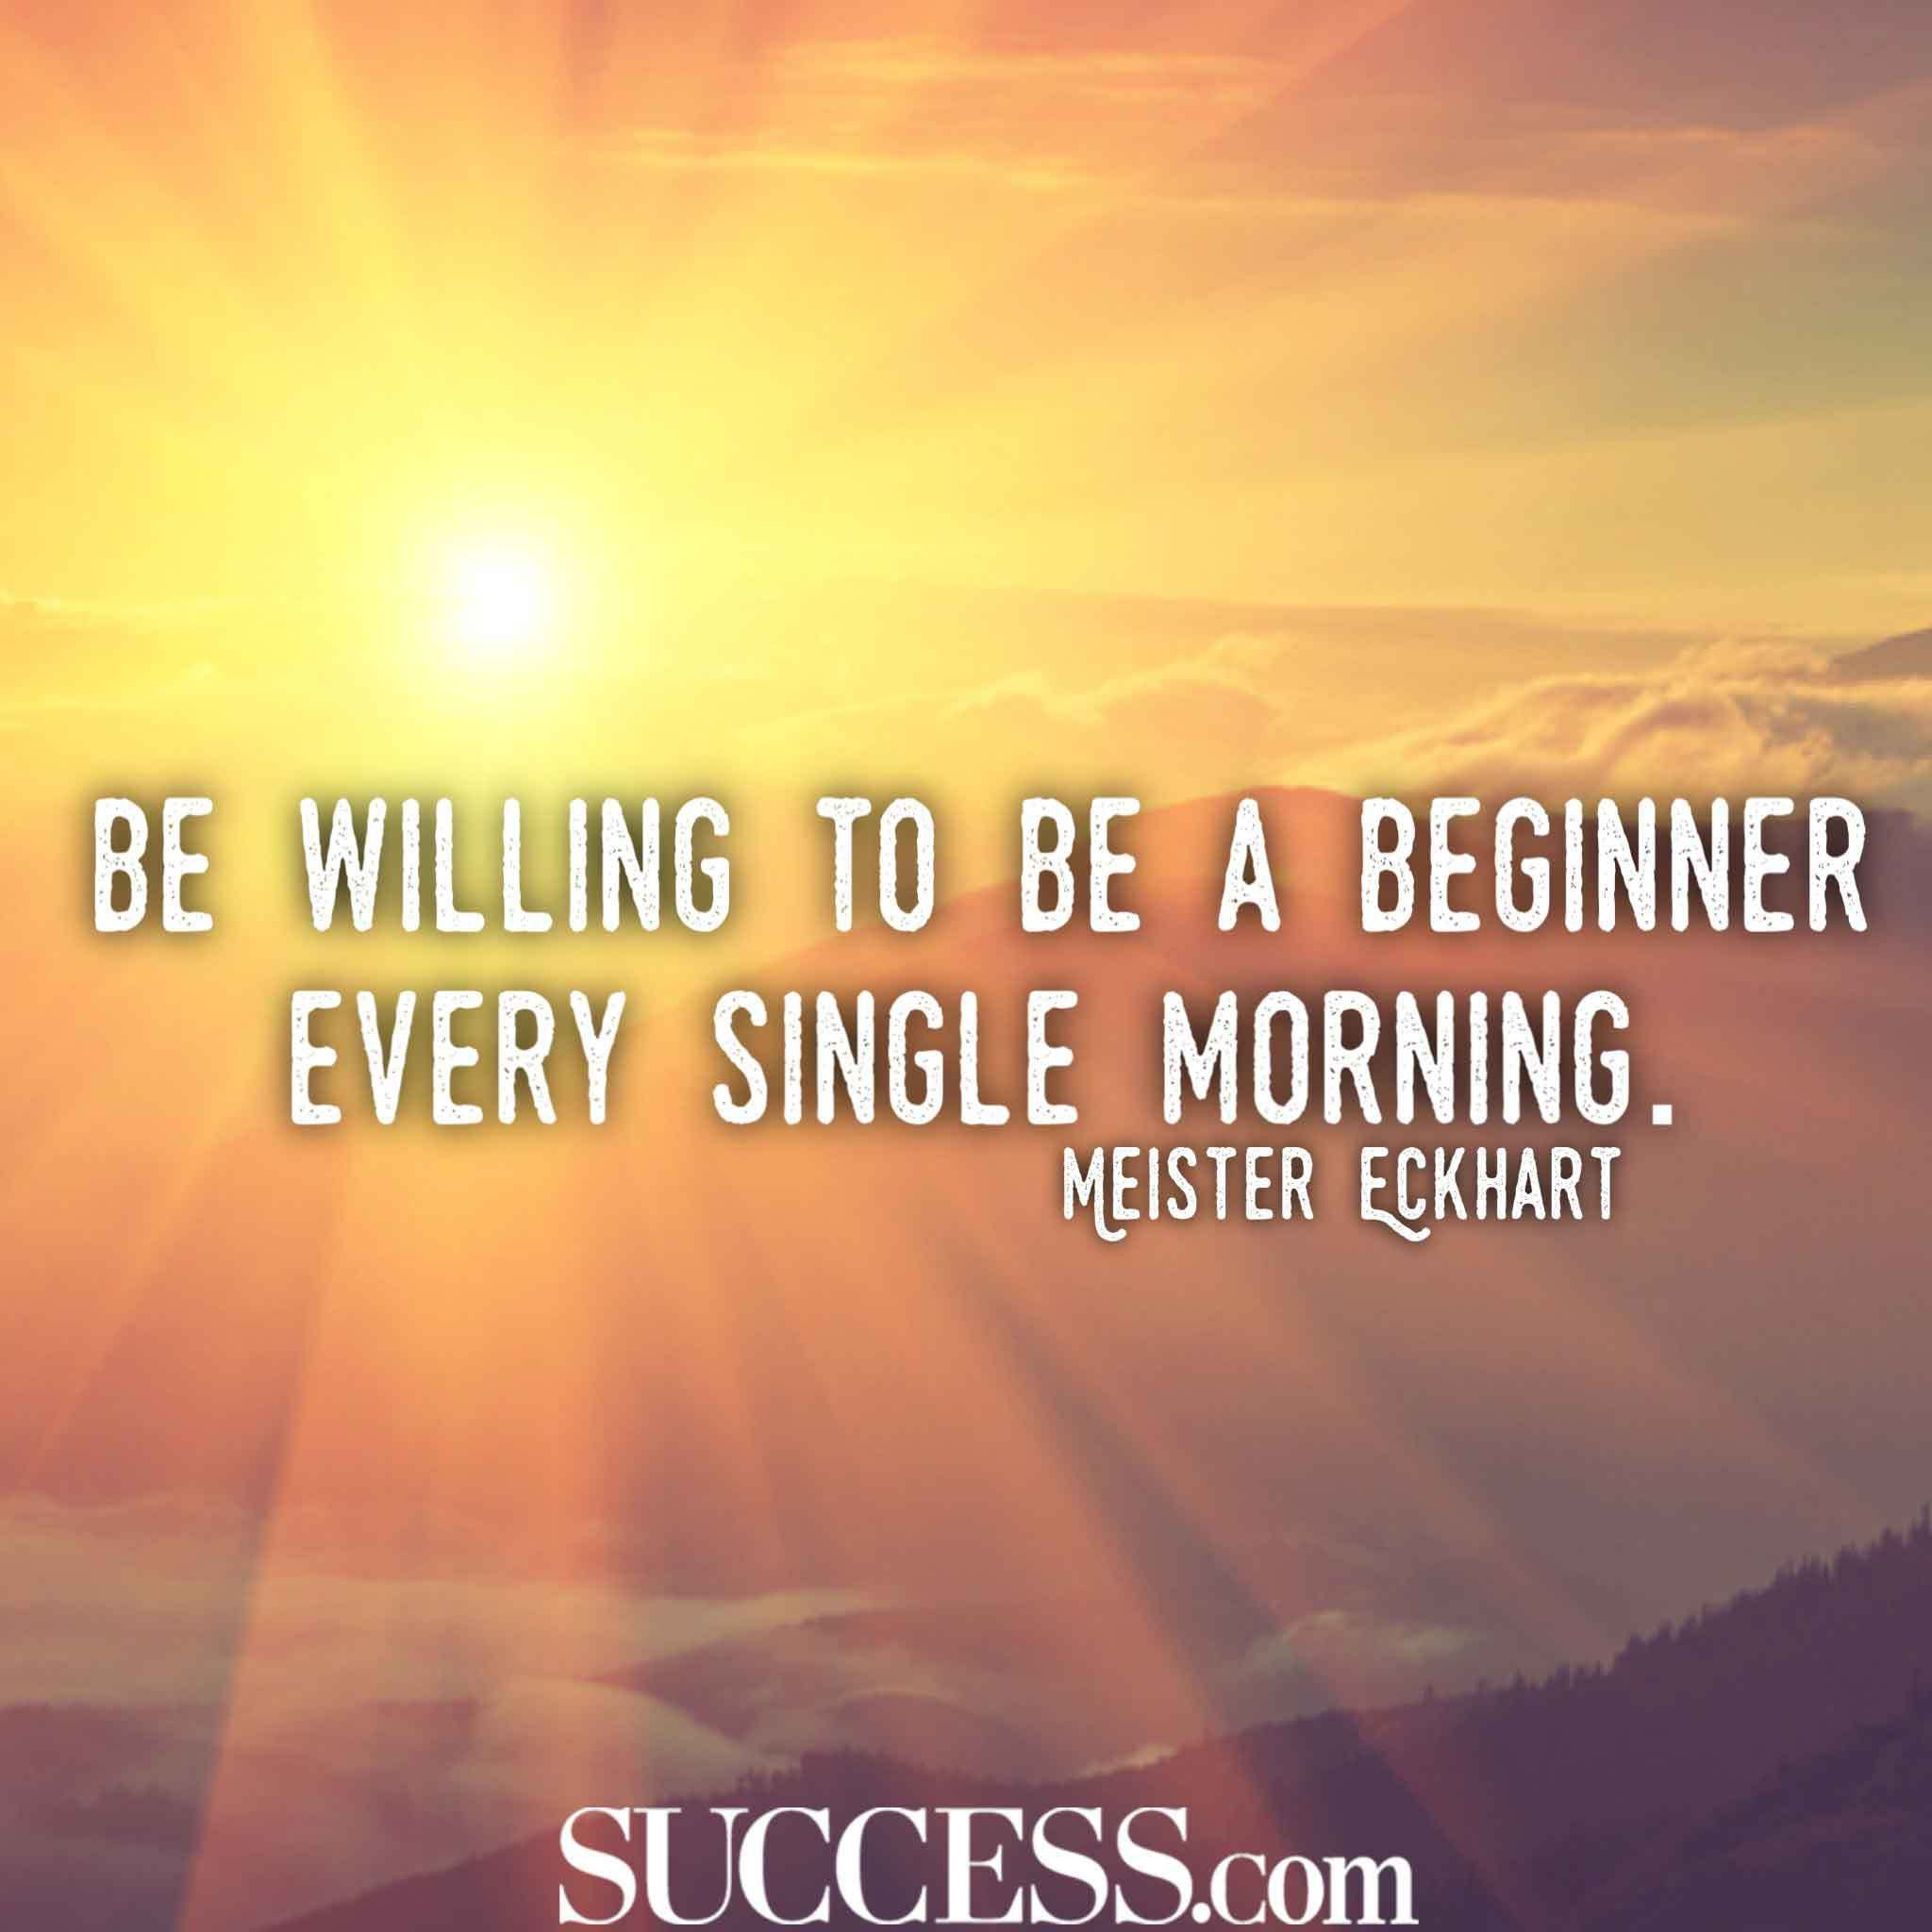 13 Uplifting Quotes About New Beginnings Success New Beginning Quotes Beginning Quotes Uplifting Quotes